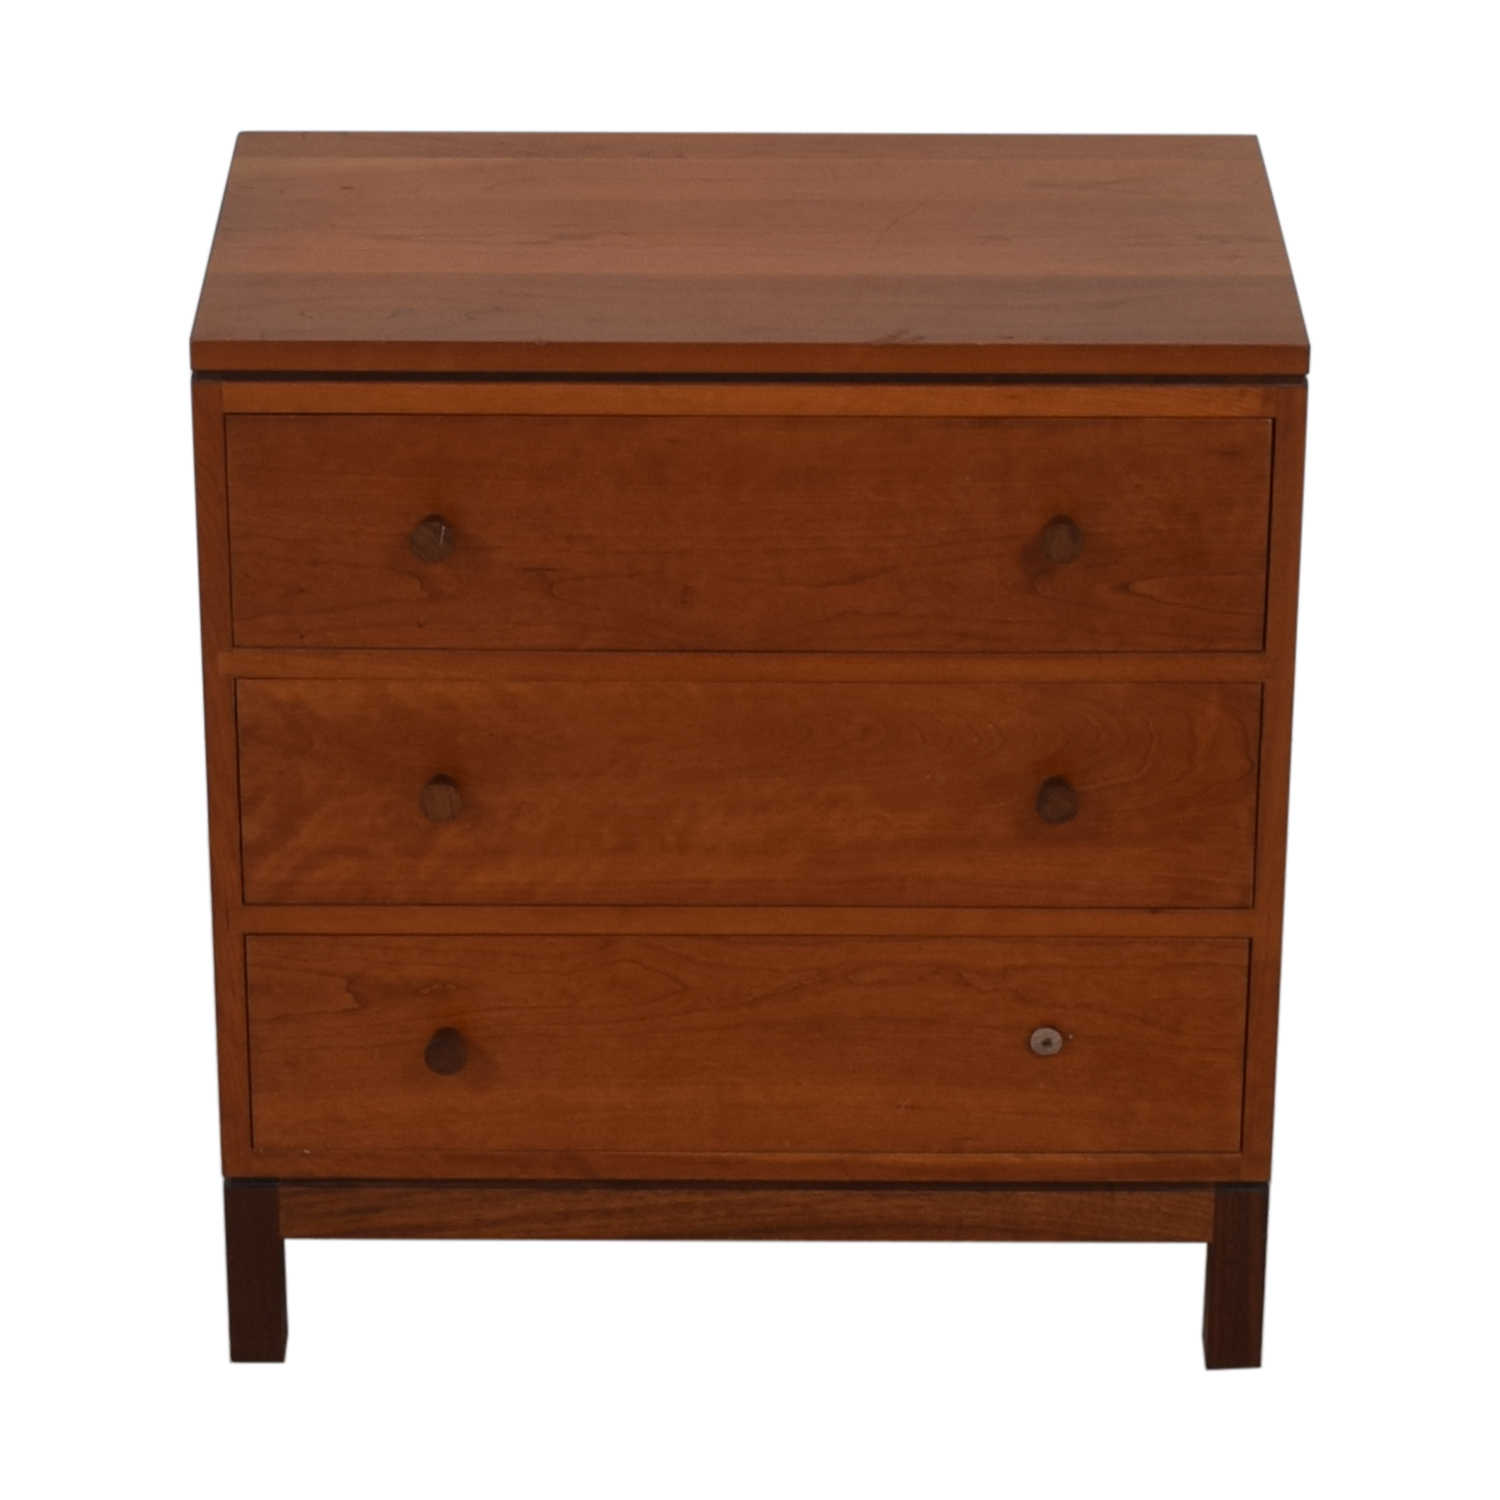 shop Stickley Furniture Stickley Furniture Shaker Style Dresser online